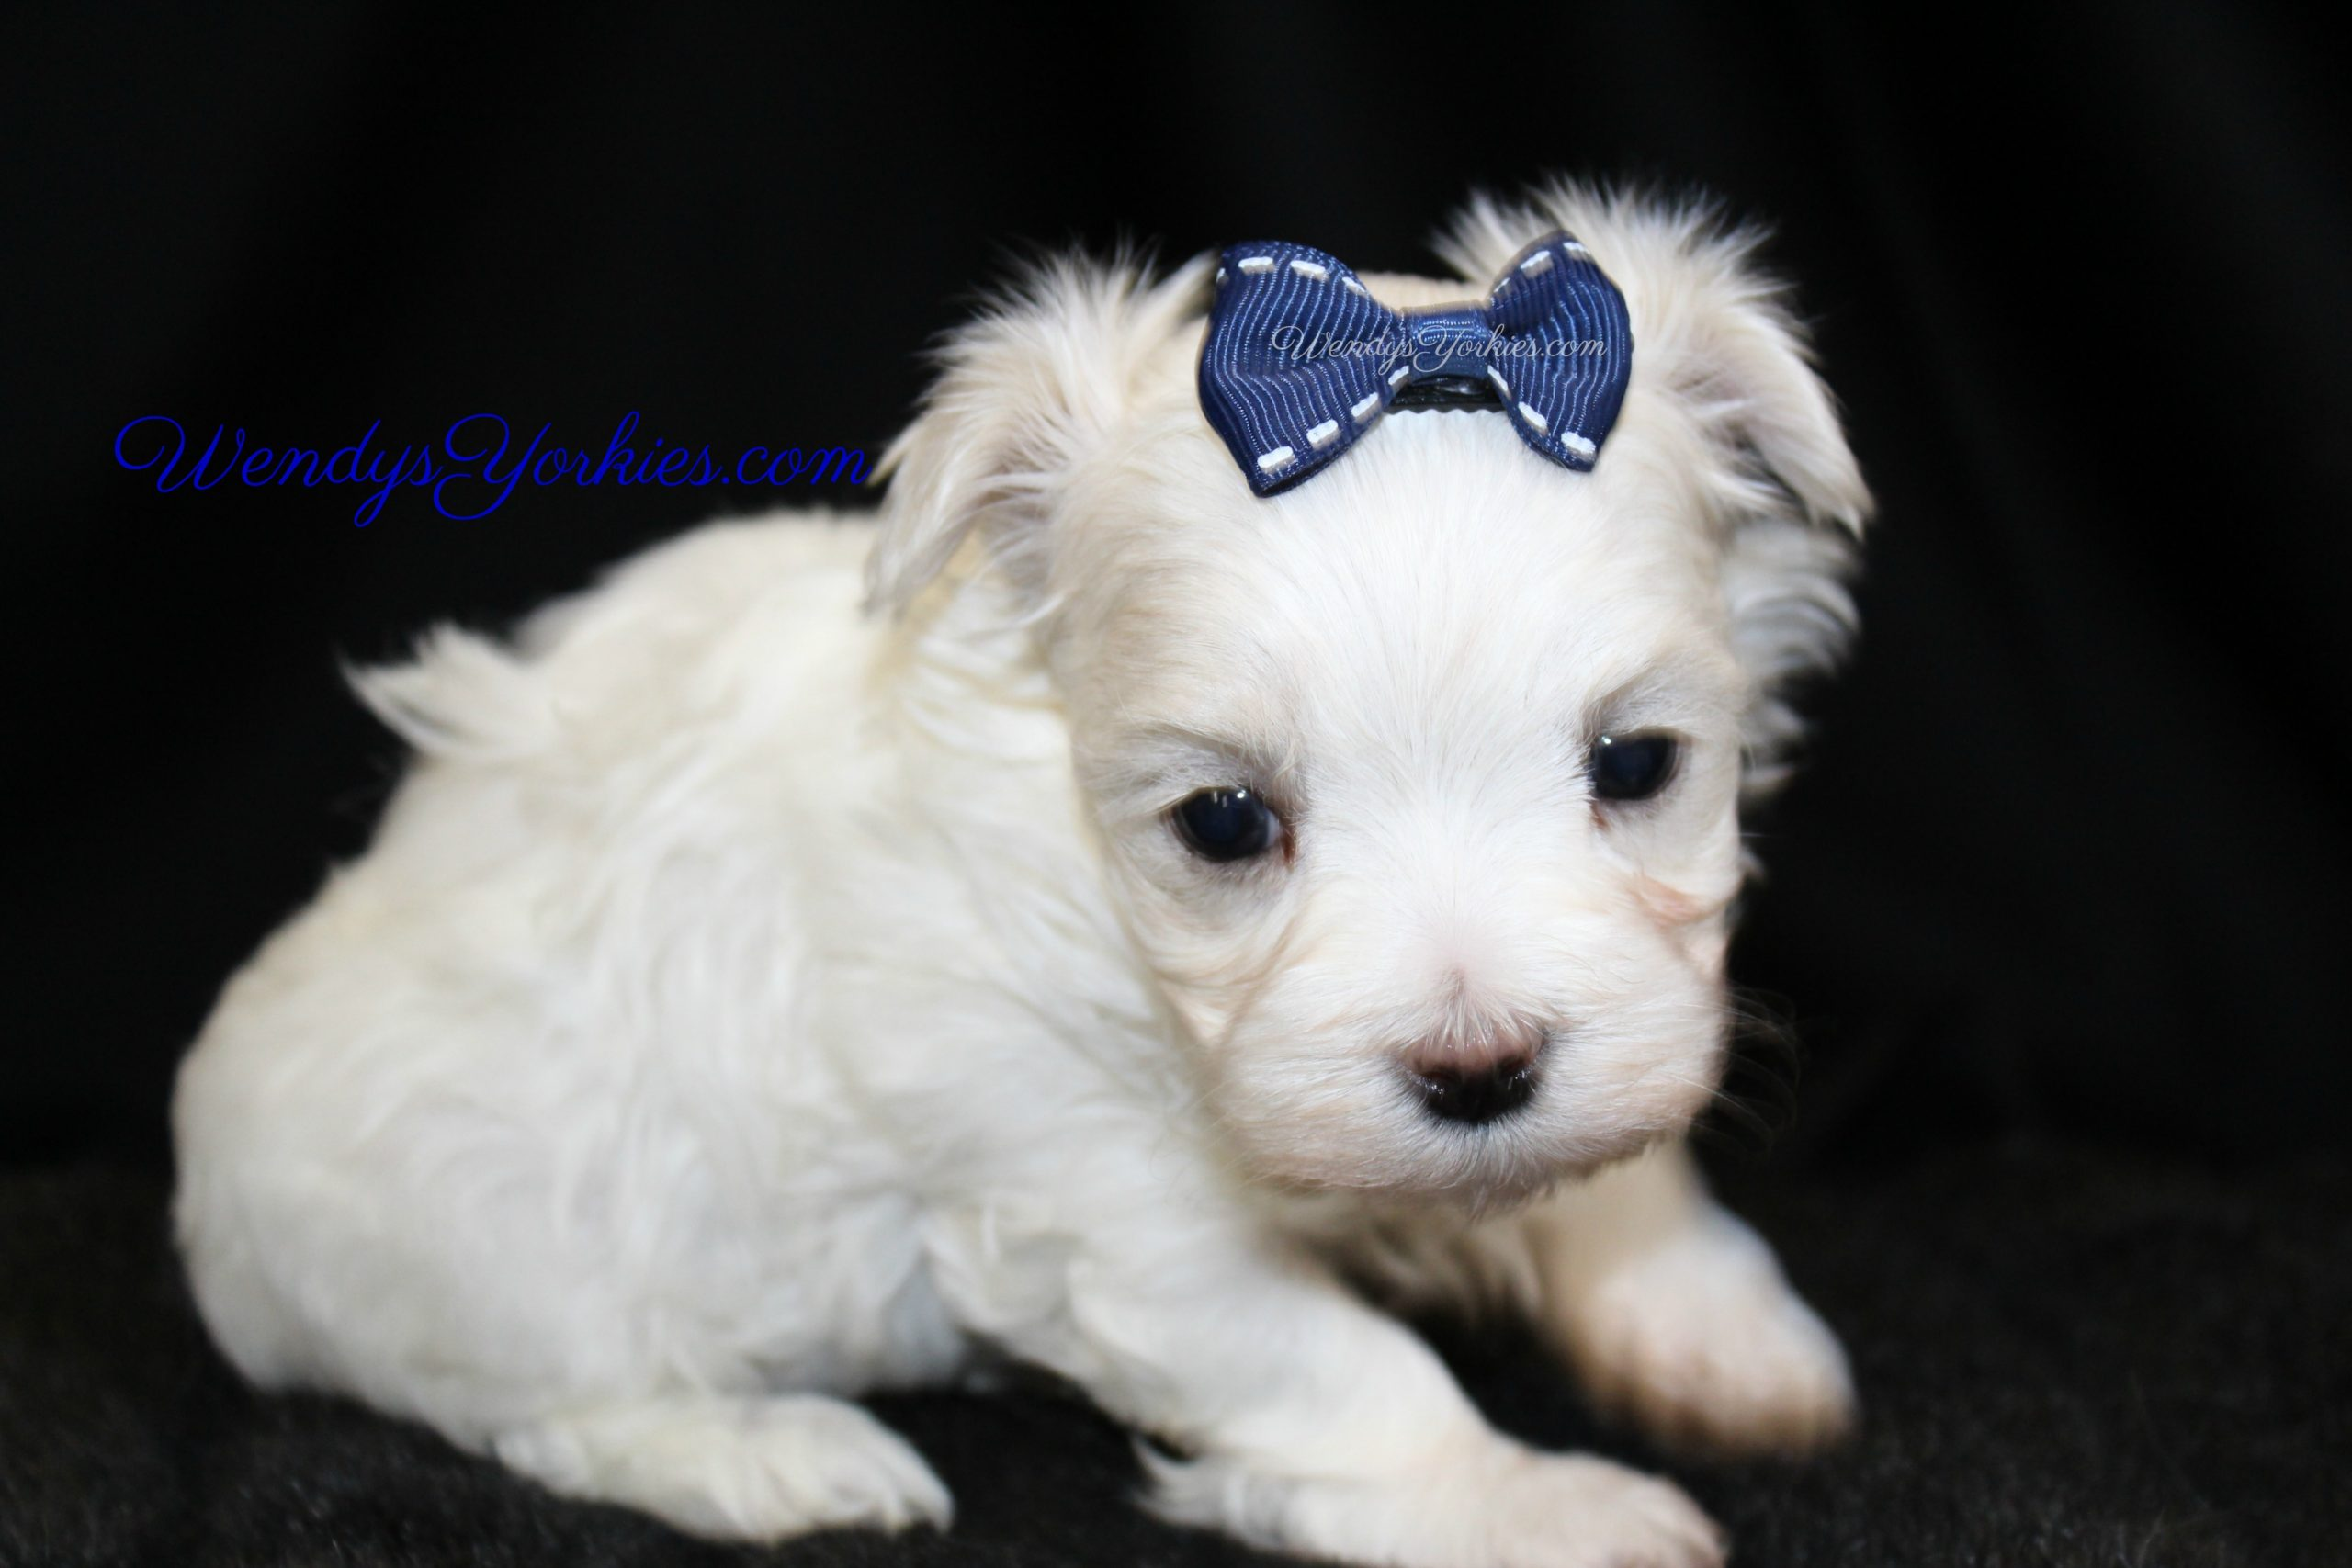 Male Maltese puppy for sale, Tiny Maltese puppy for sale in Texas, WendysYorkies.com